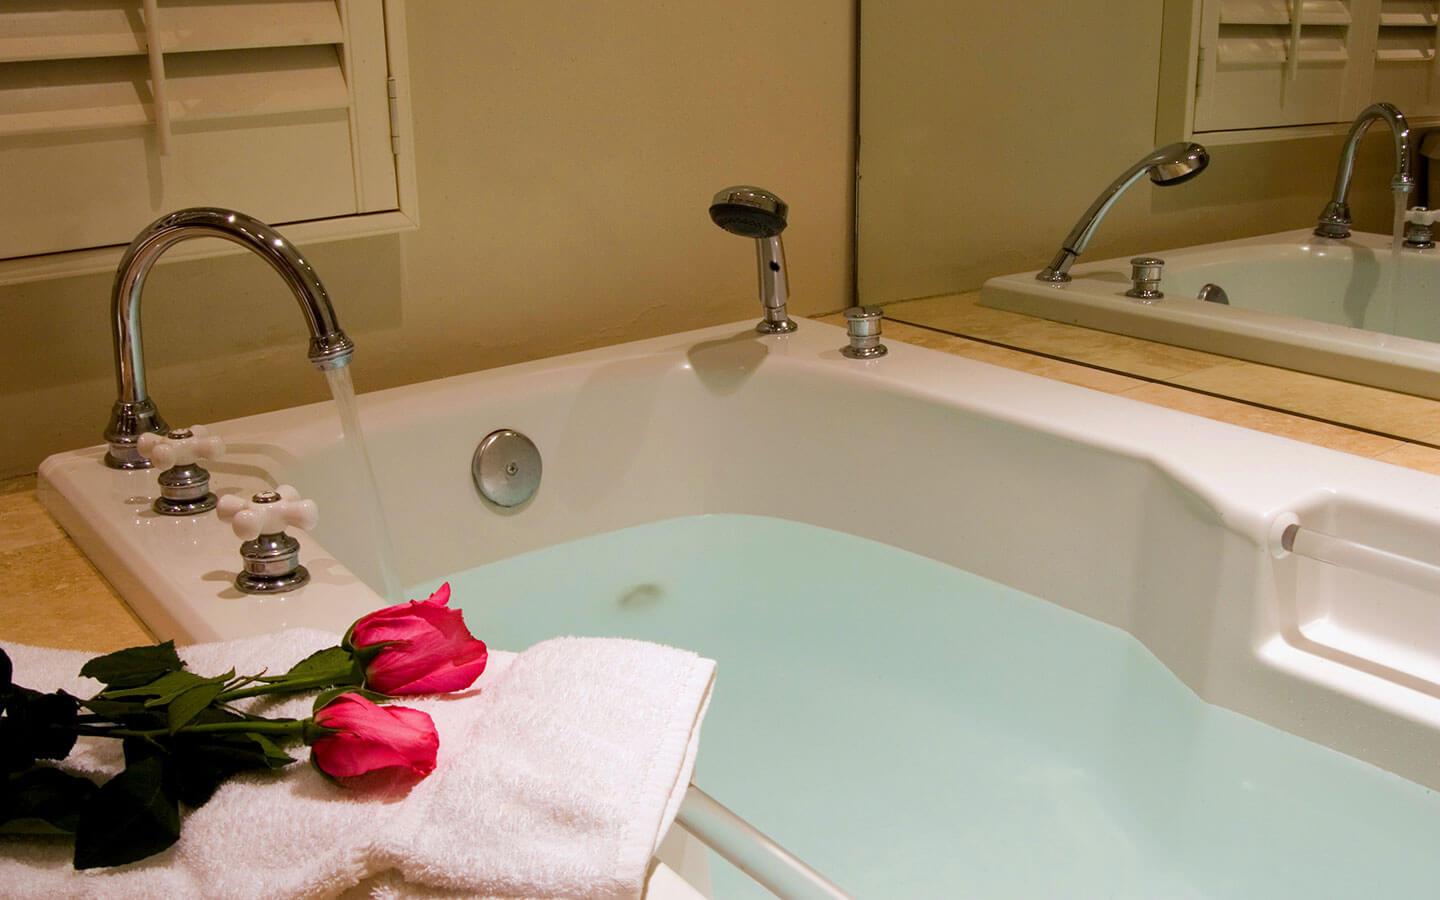 relax in a romantic jacuzzi tub at our Carmel bed and breakfast